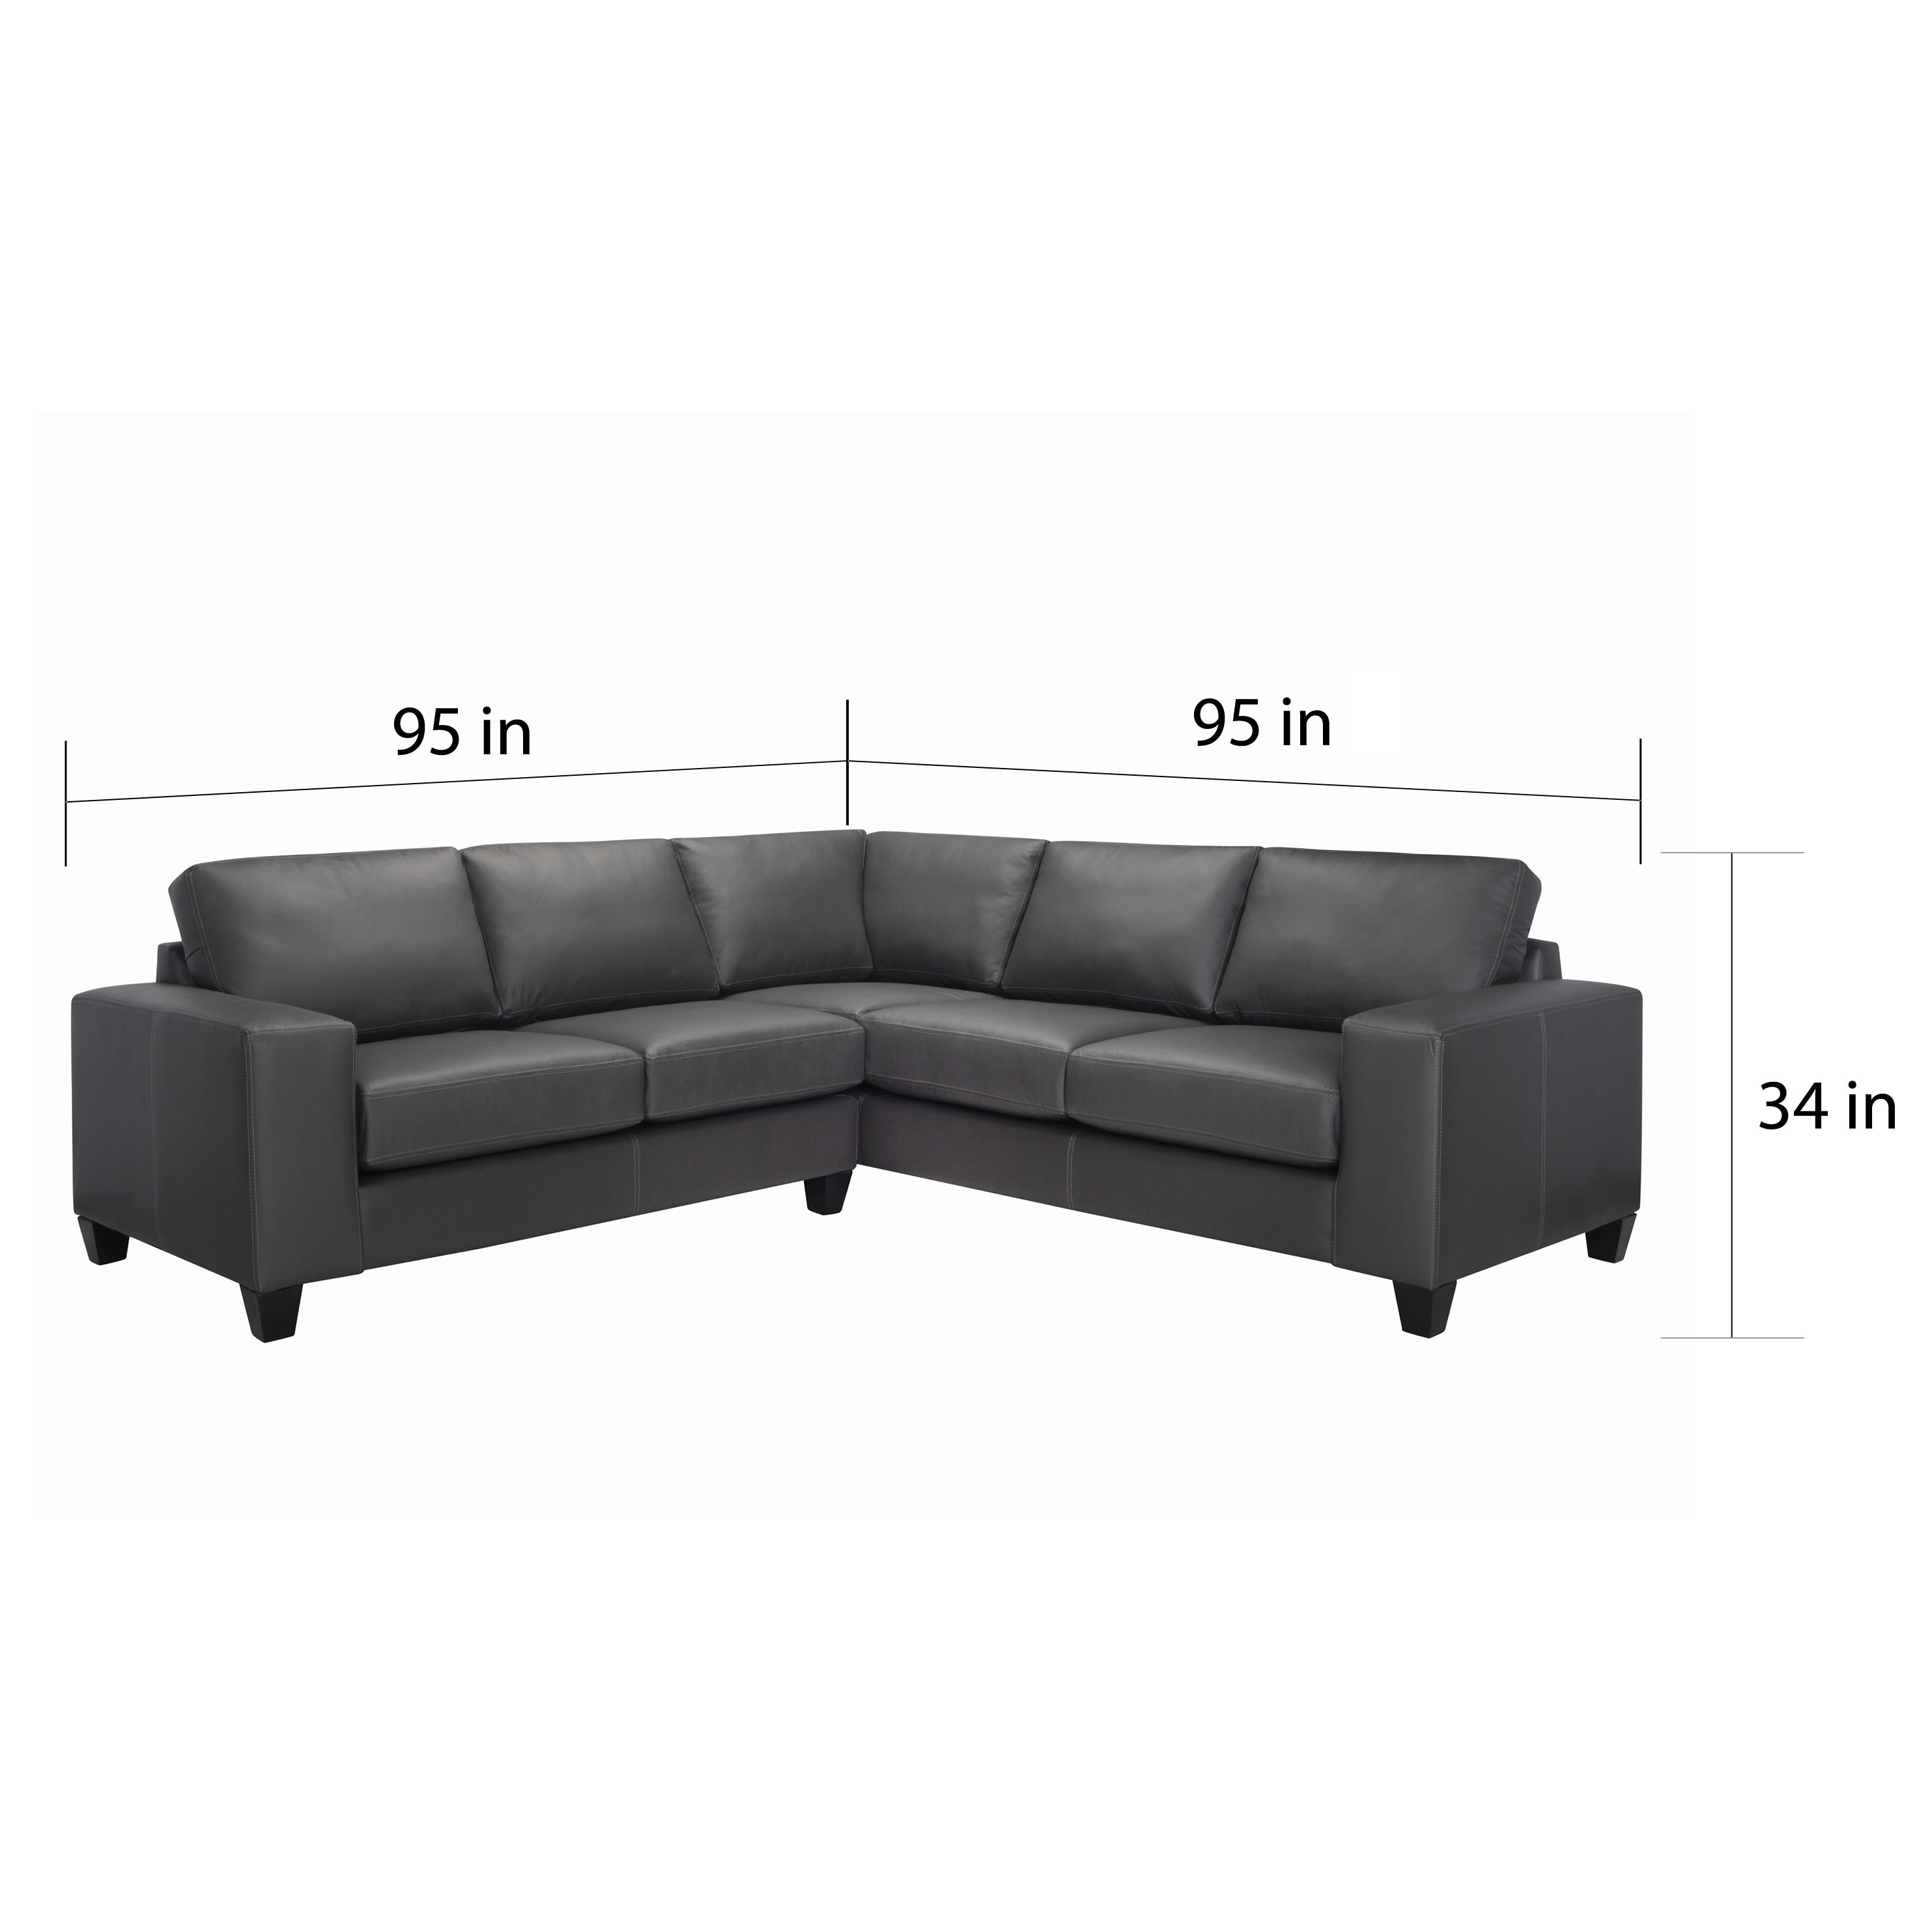 Merveilleux Shop Paulina Grey Italian Leather Sectional Sofa   Free Shipping Today    Overstock.com   8089927